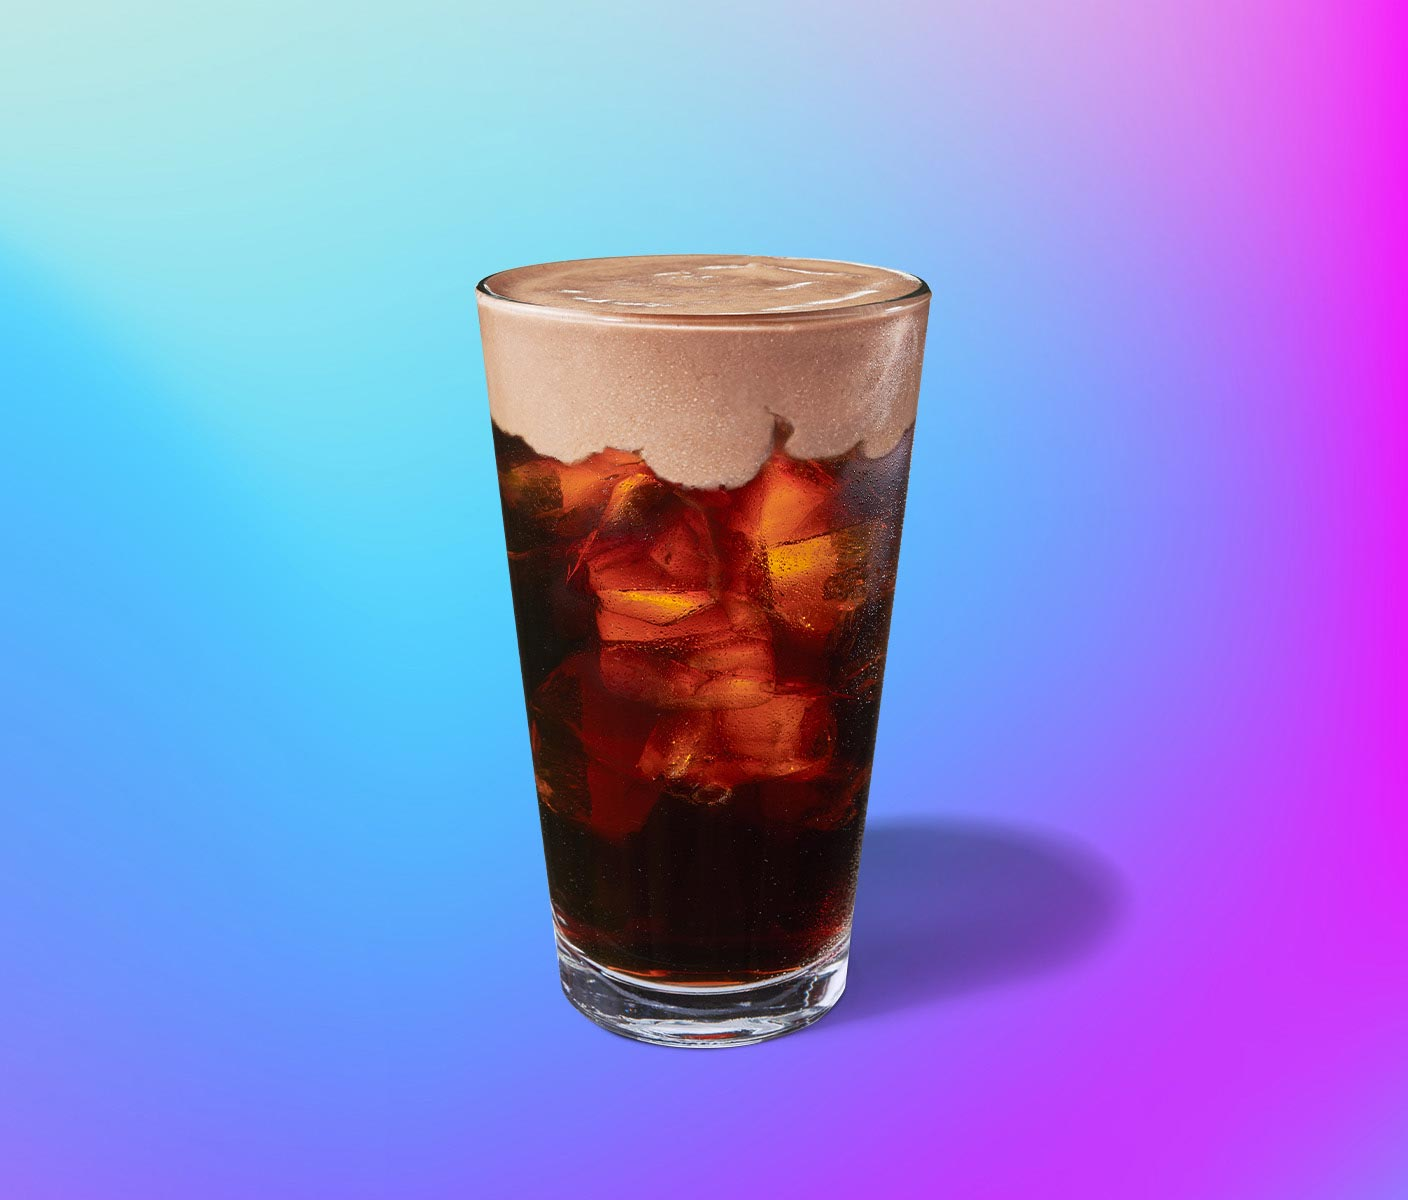 Cold coffee drink with foam topping in a clear glass